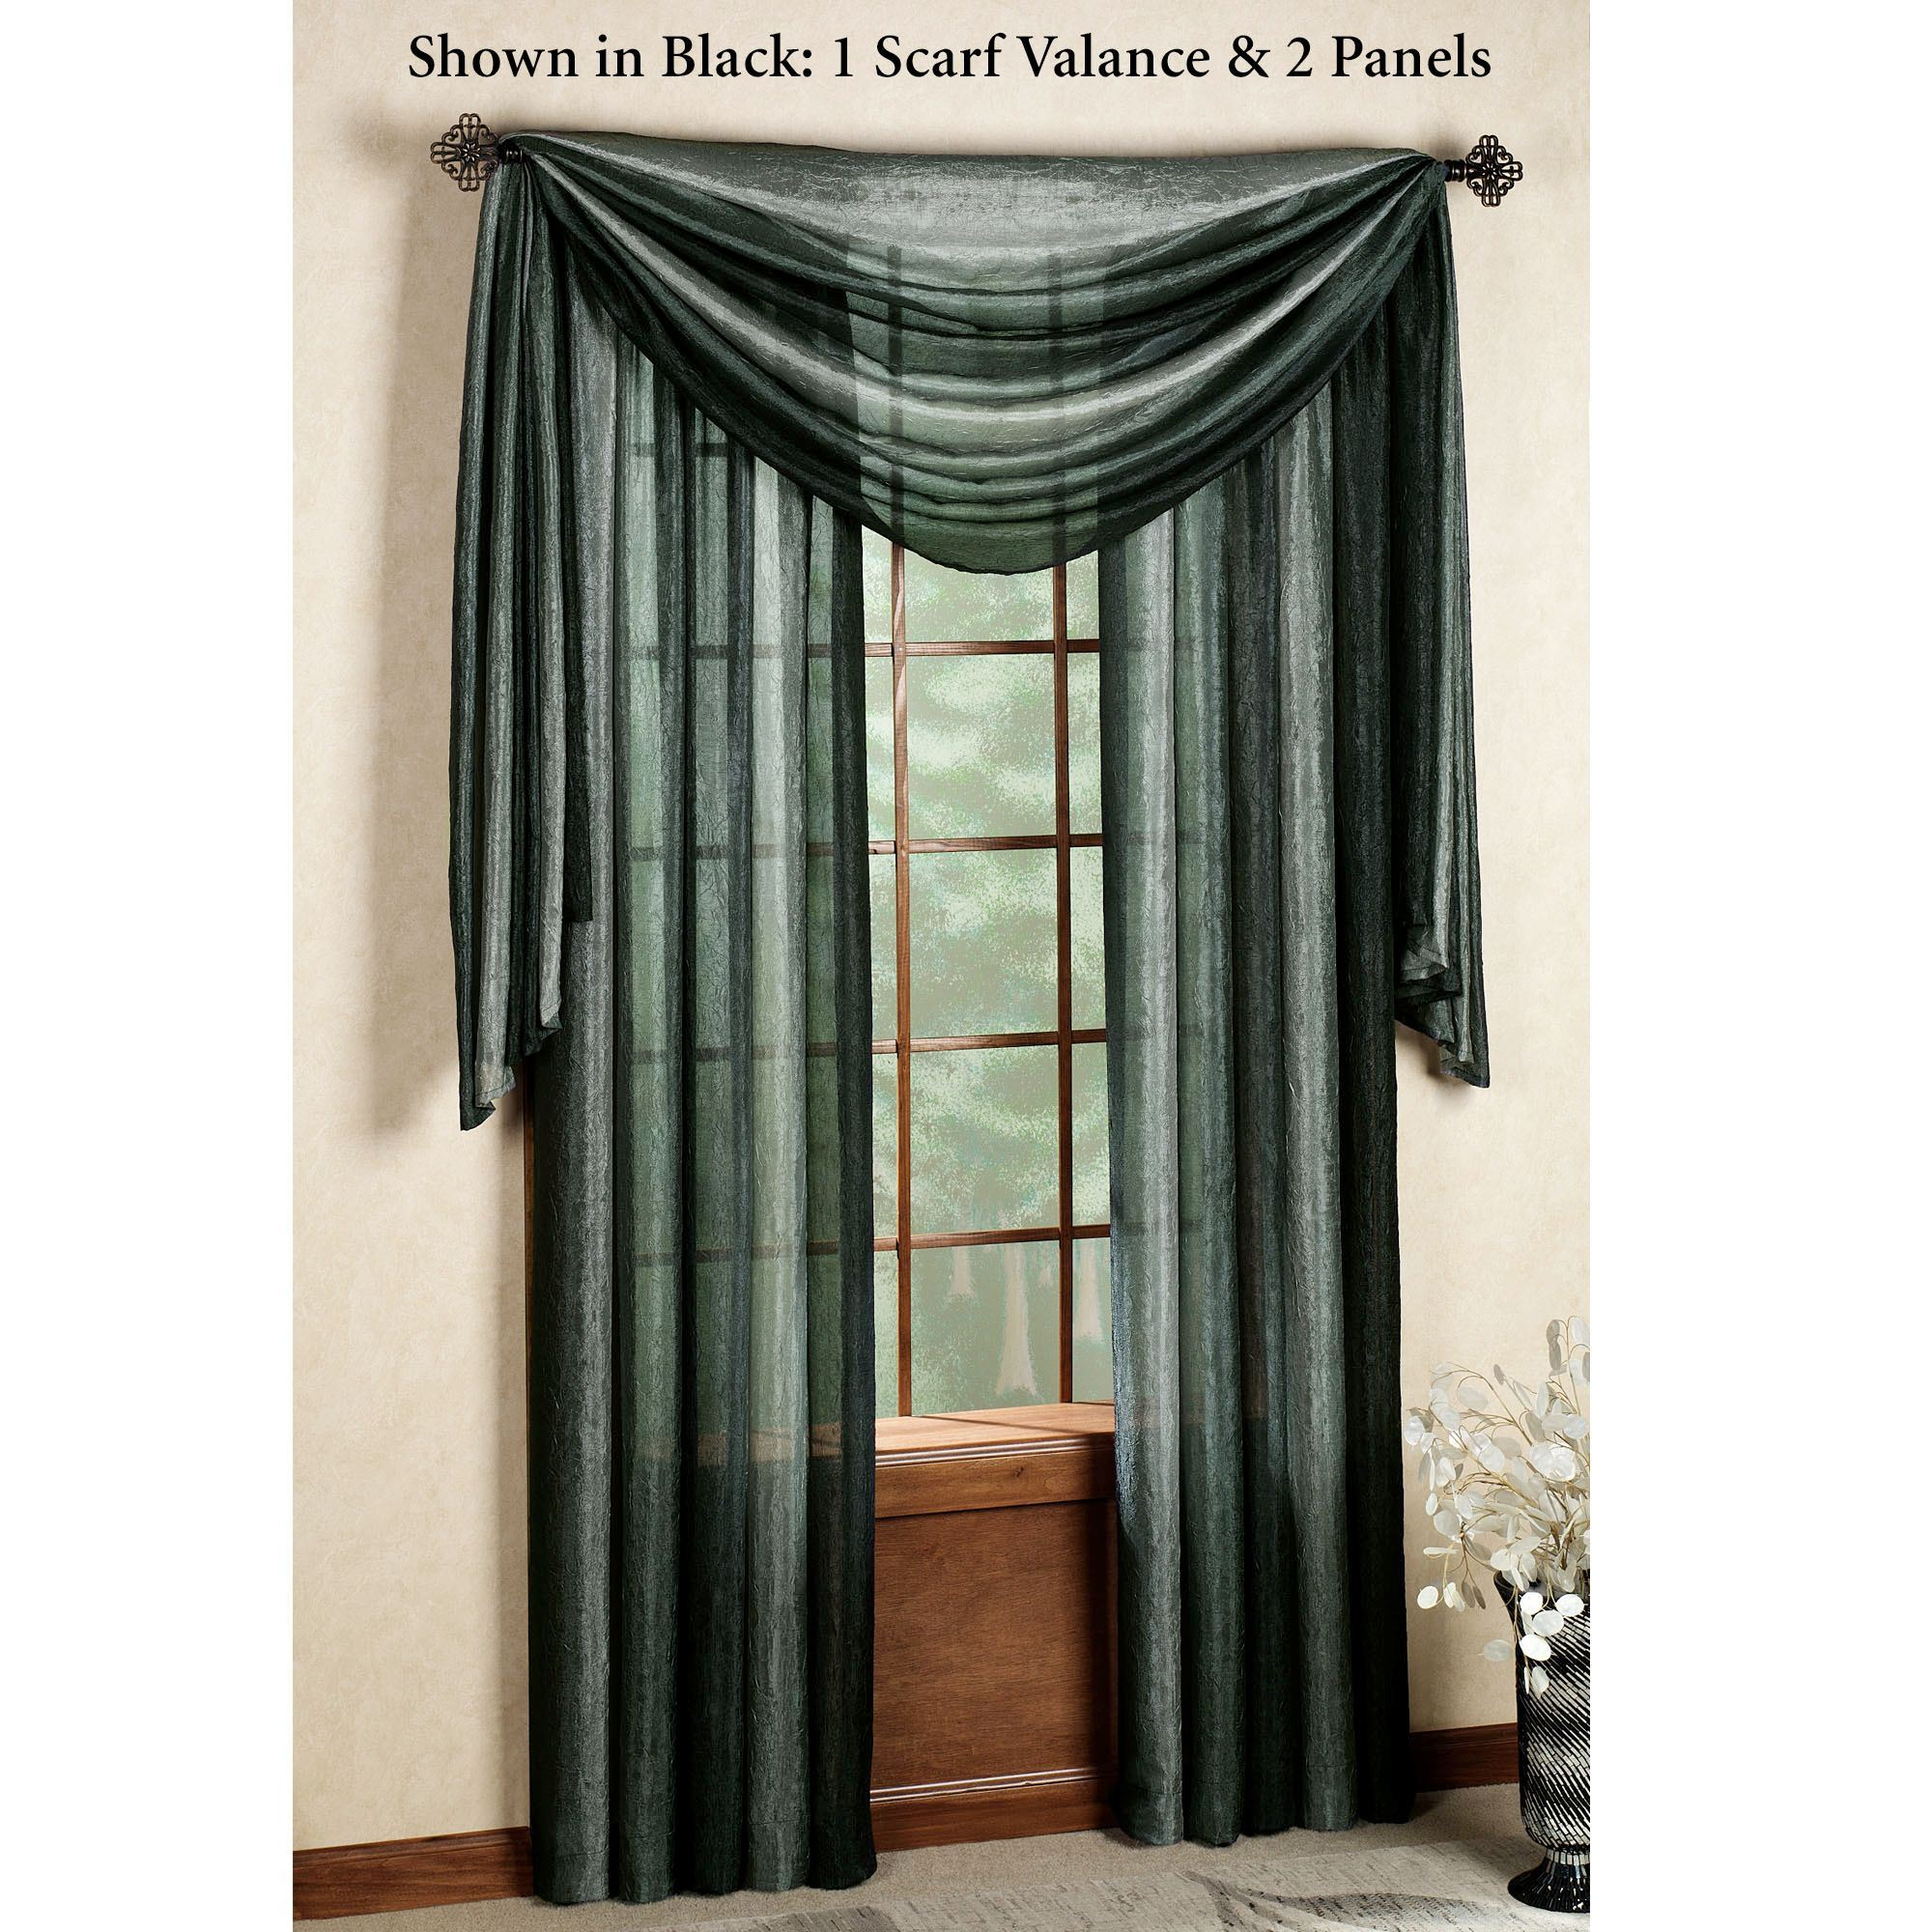 popular house scarf valance treatments plaid doherty valances window